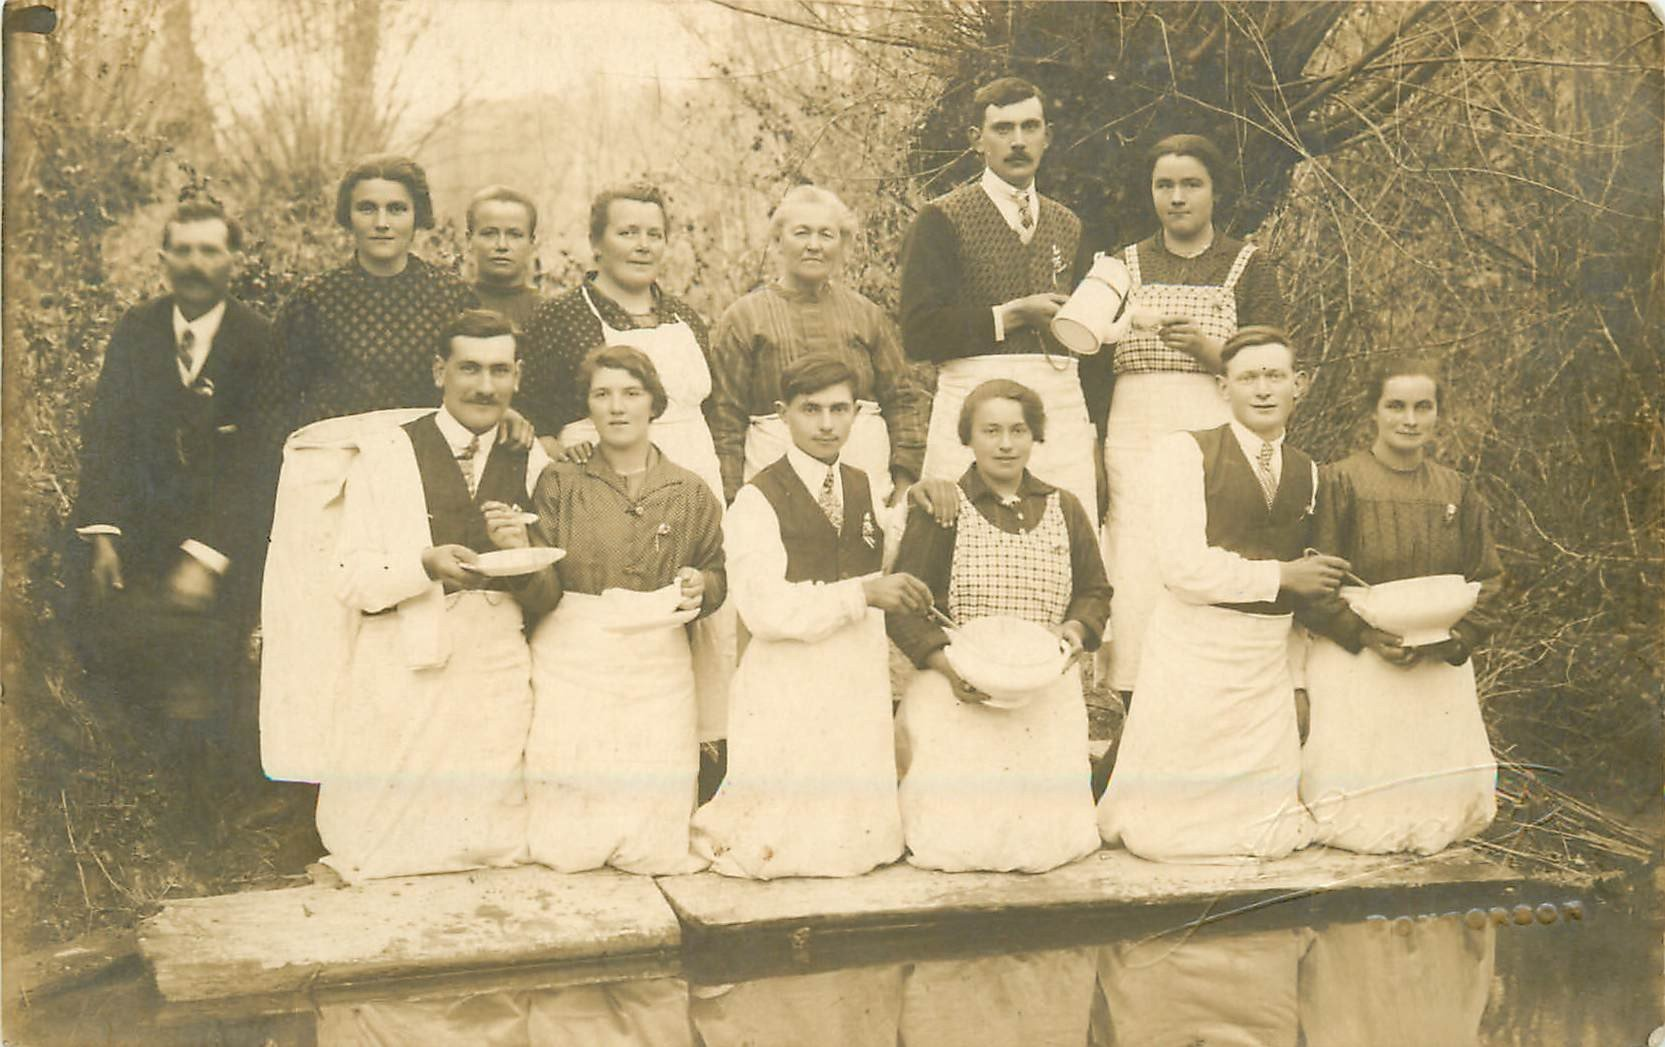 50 PONTORSON. Personnel d'un Hôtel Restaurant. Photo carte postale ancienne vers 1910